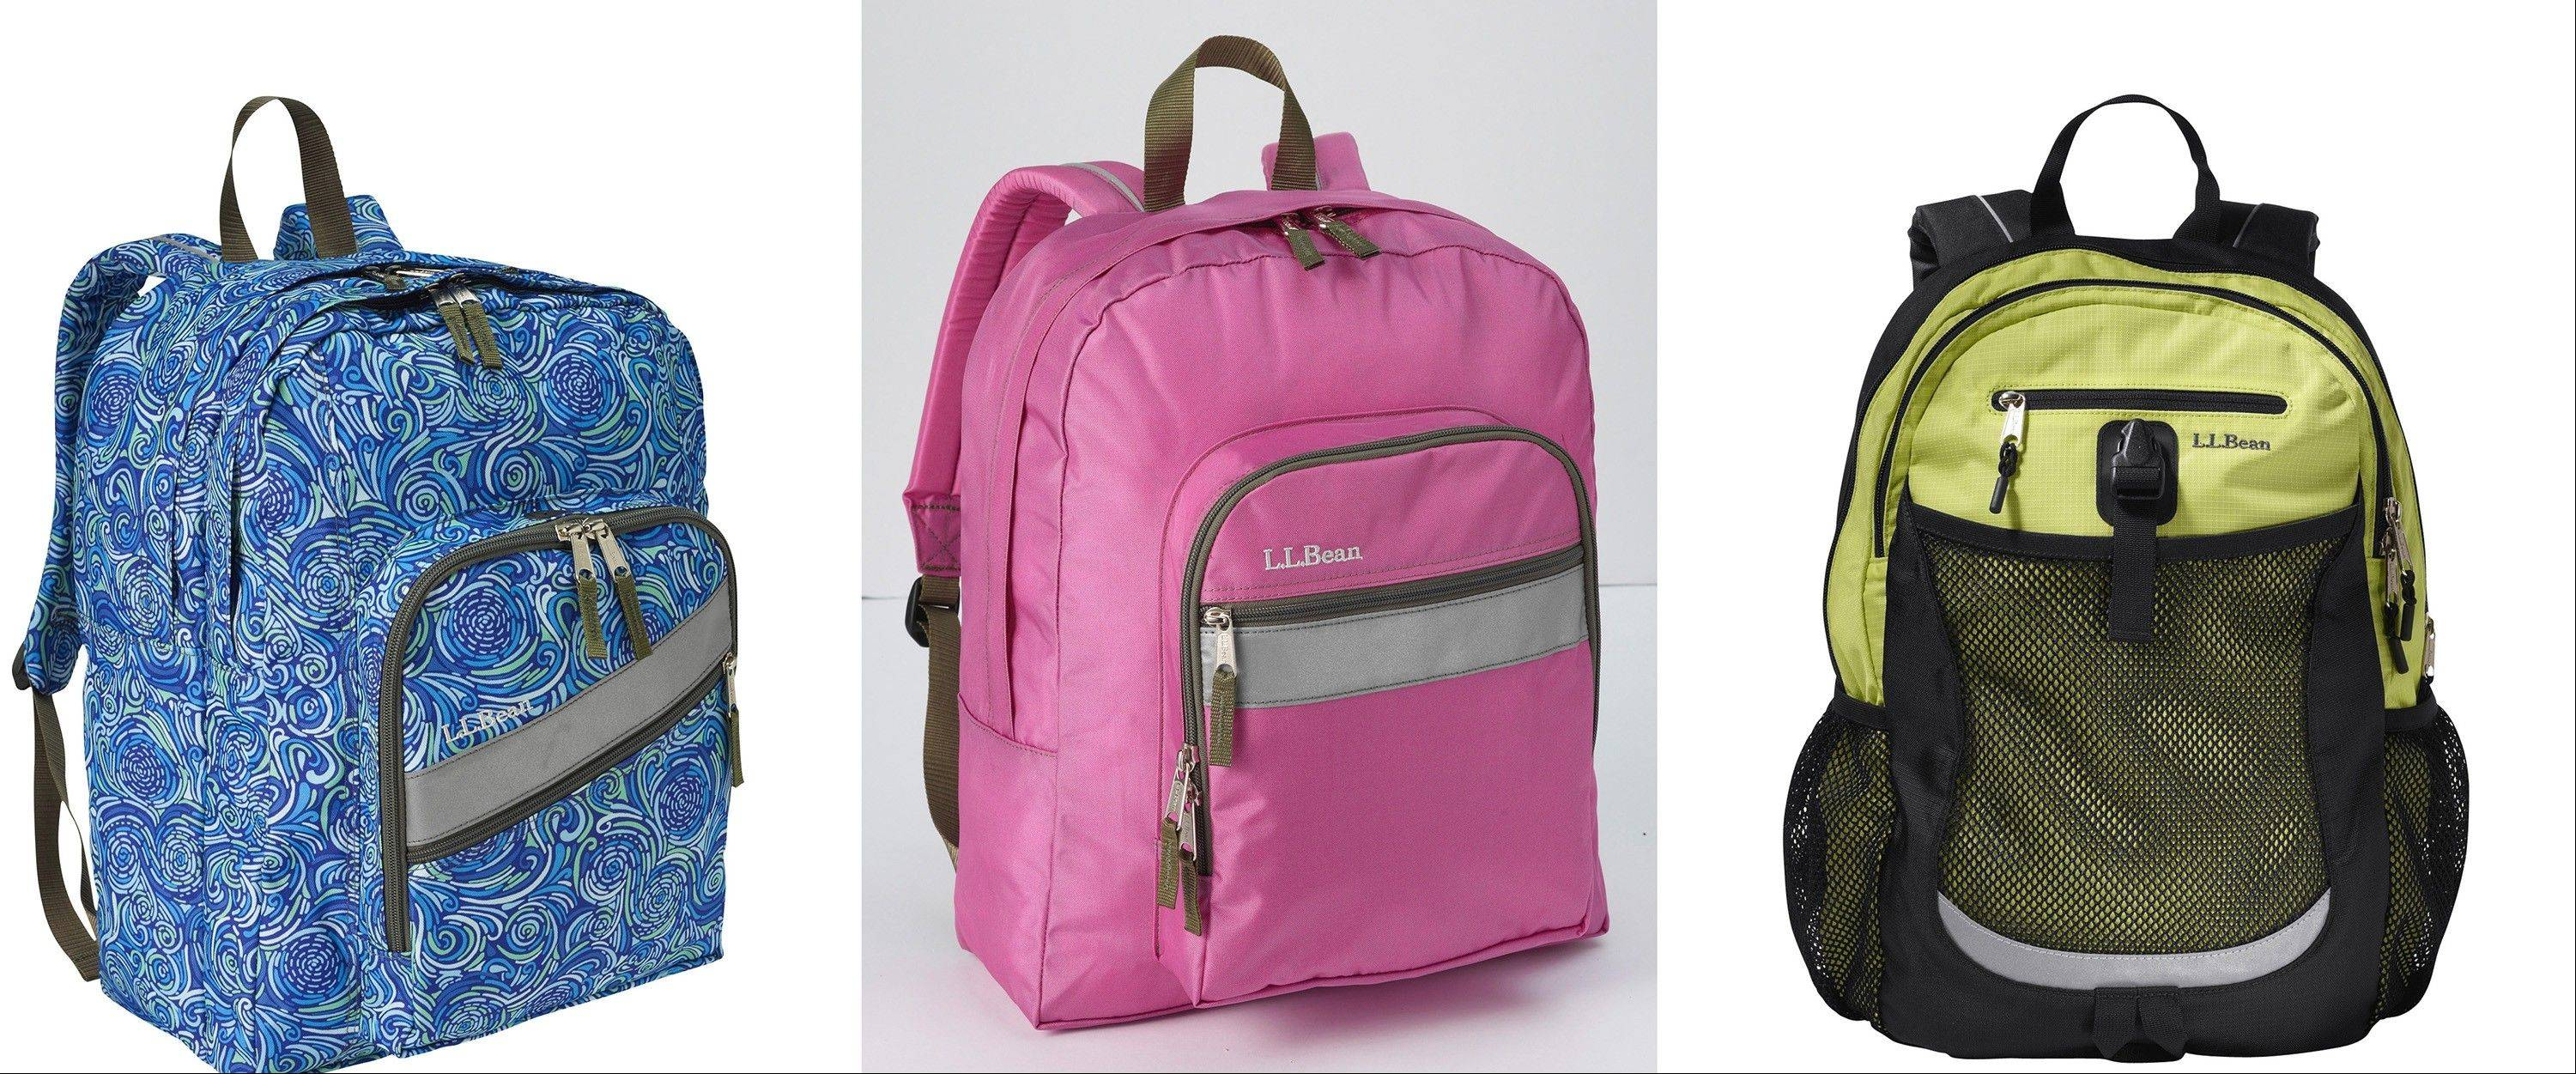 Backpacks at different price points, all from L.L. Bean: from left, Deluxe Book Pack for children age 10 and older, $39.95; the Original Back Pack for children age 7 and older, $34.95; and the Sport Pack, for children age 9 and older, $49.95.